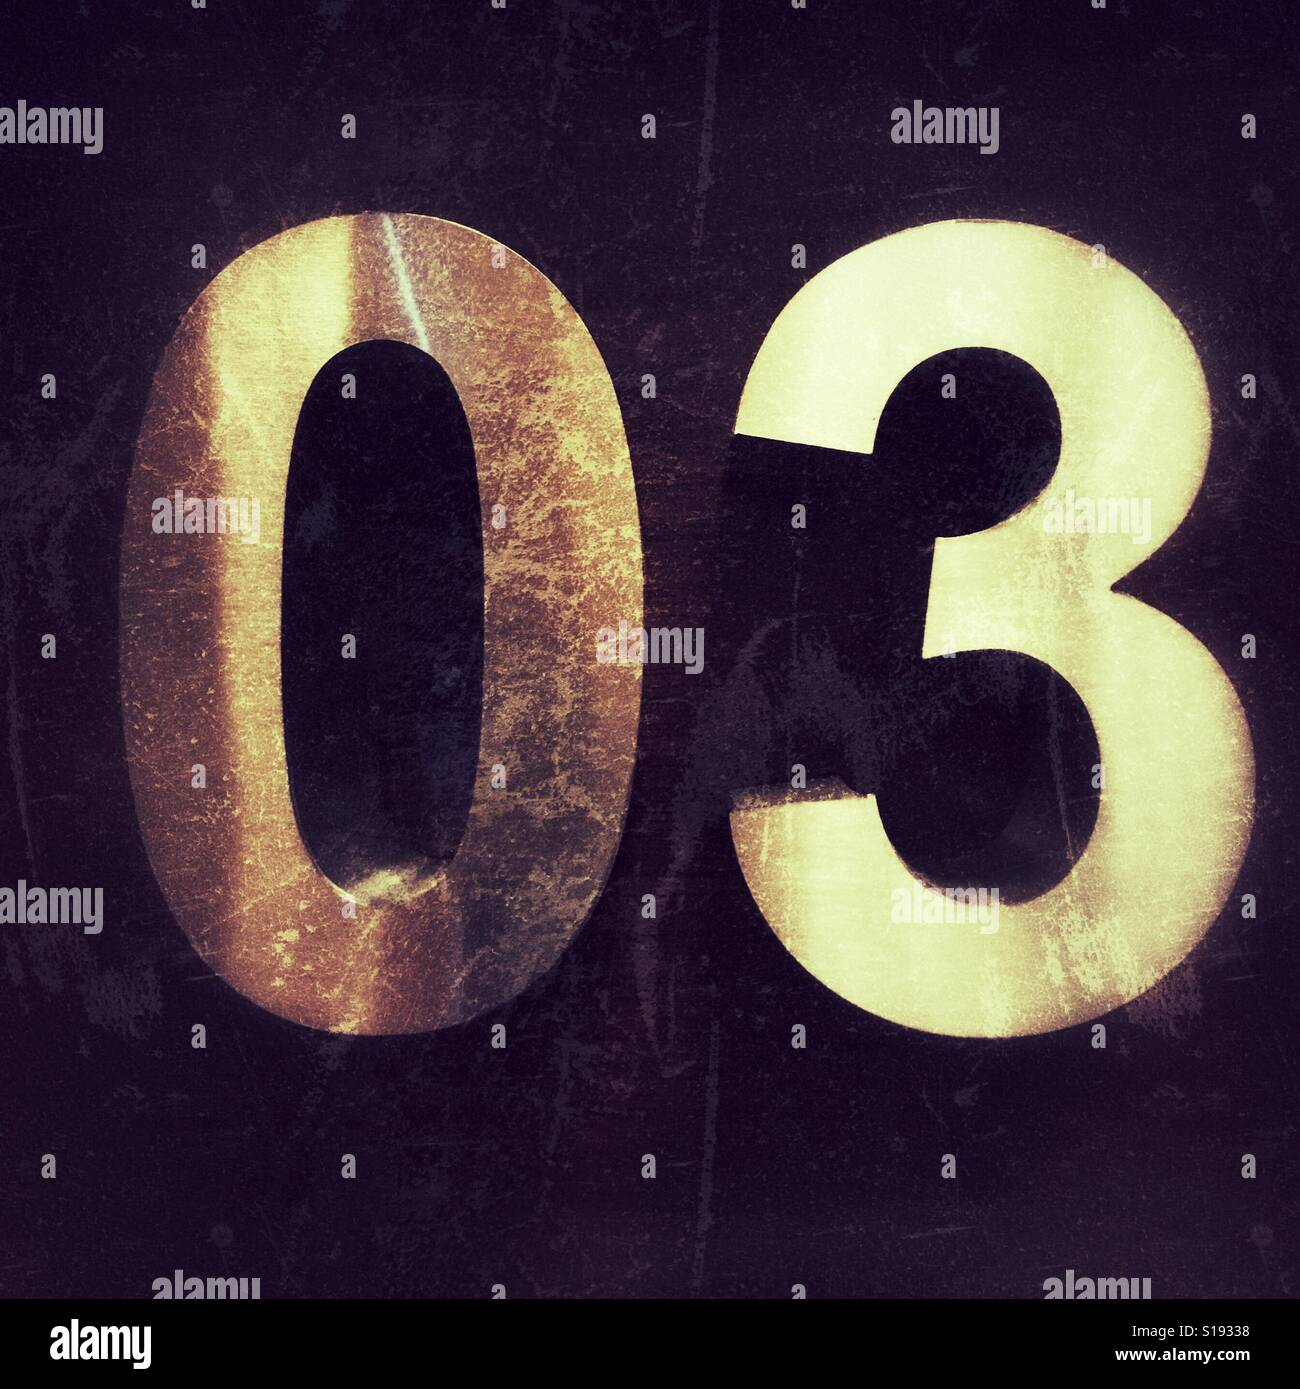 Number 3 - Three numeral - Stock Image